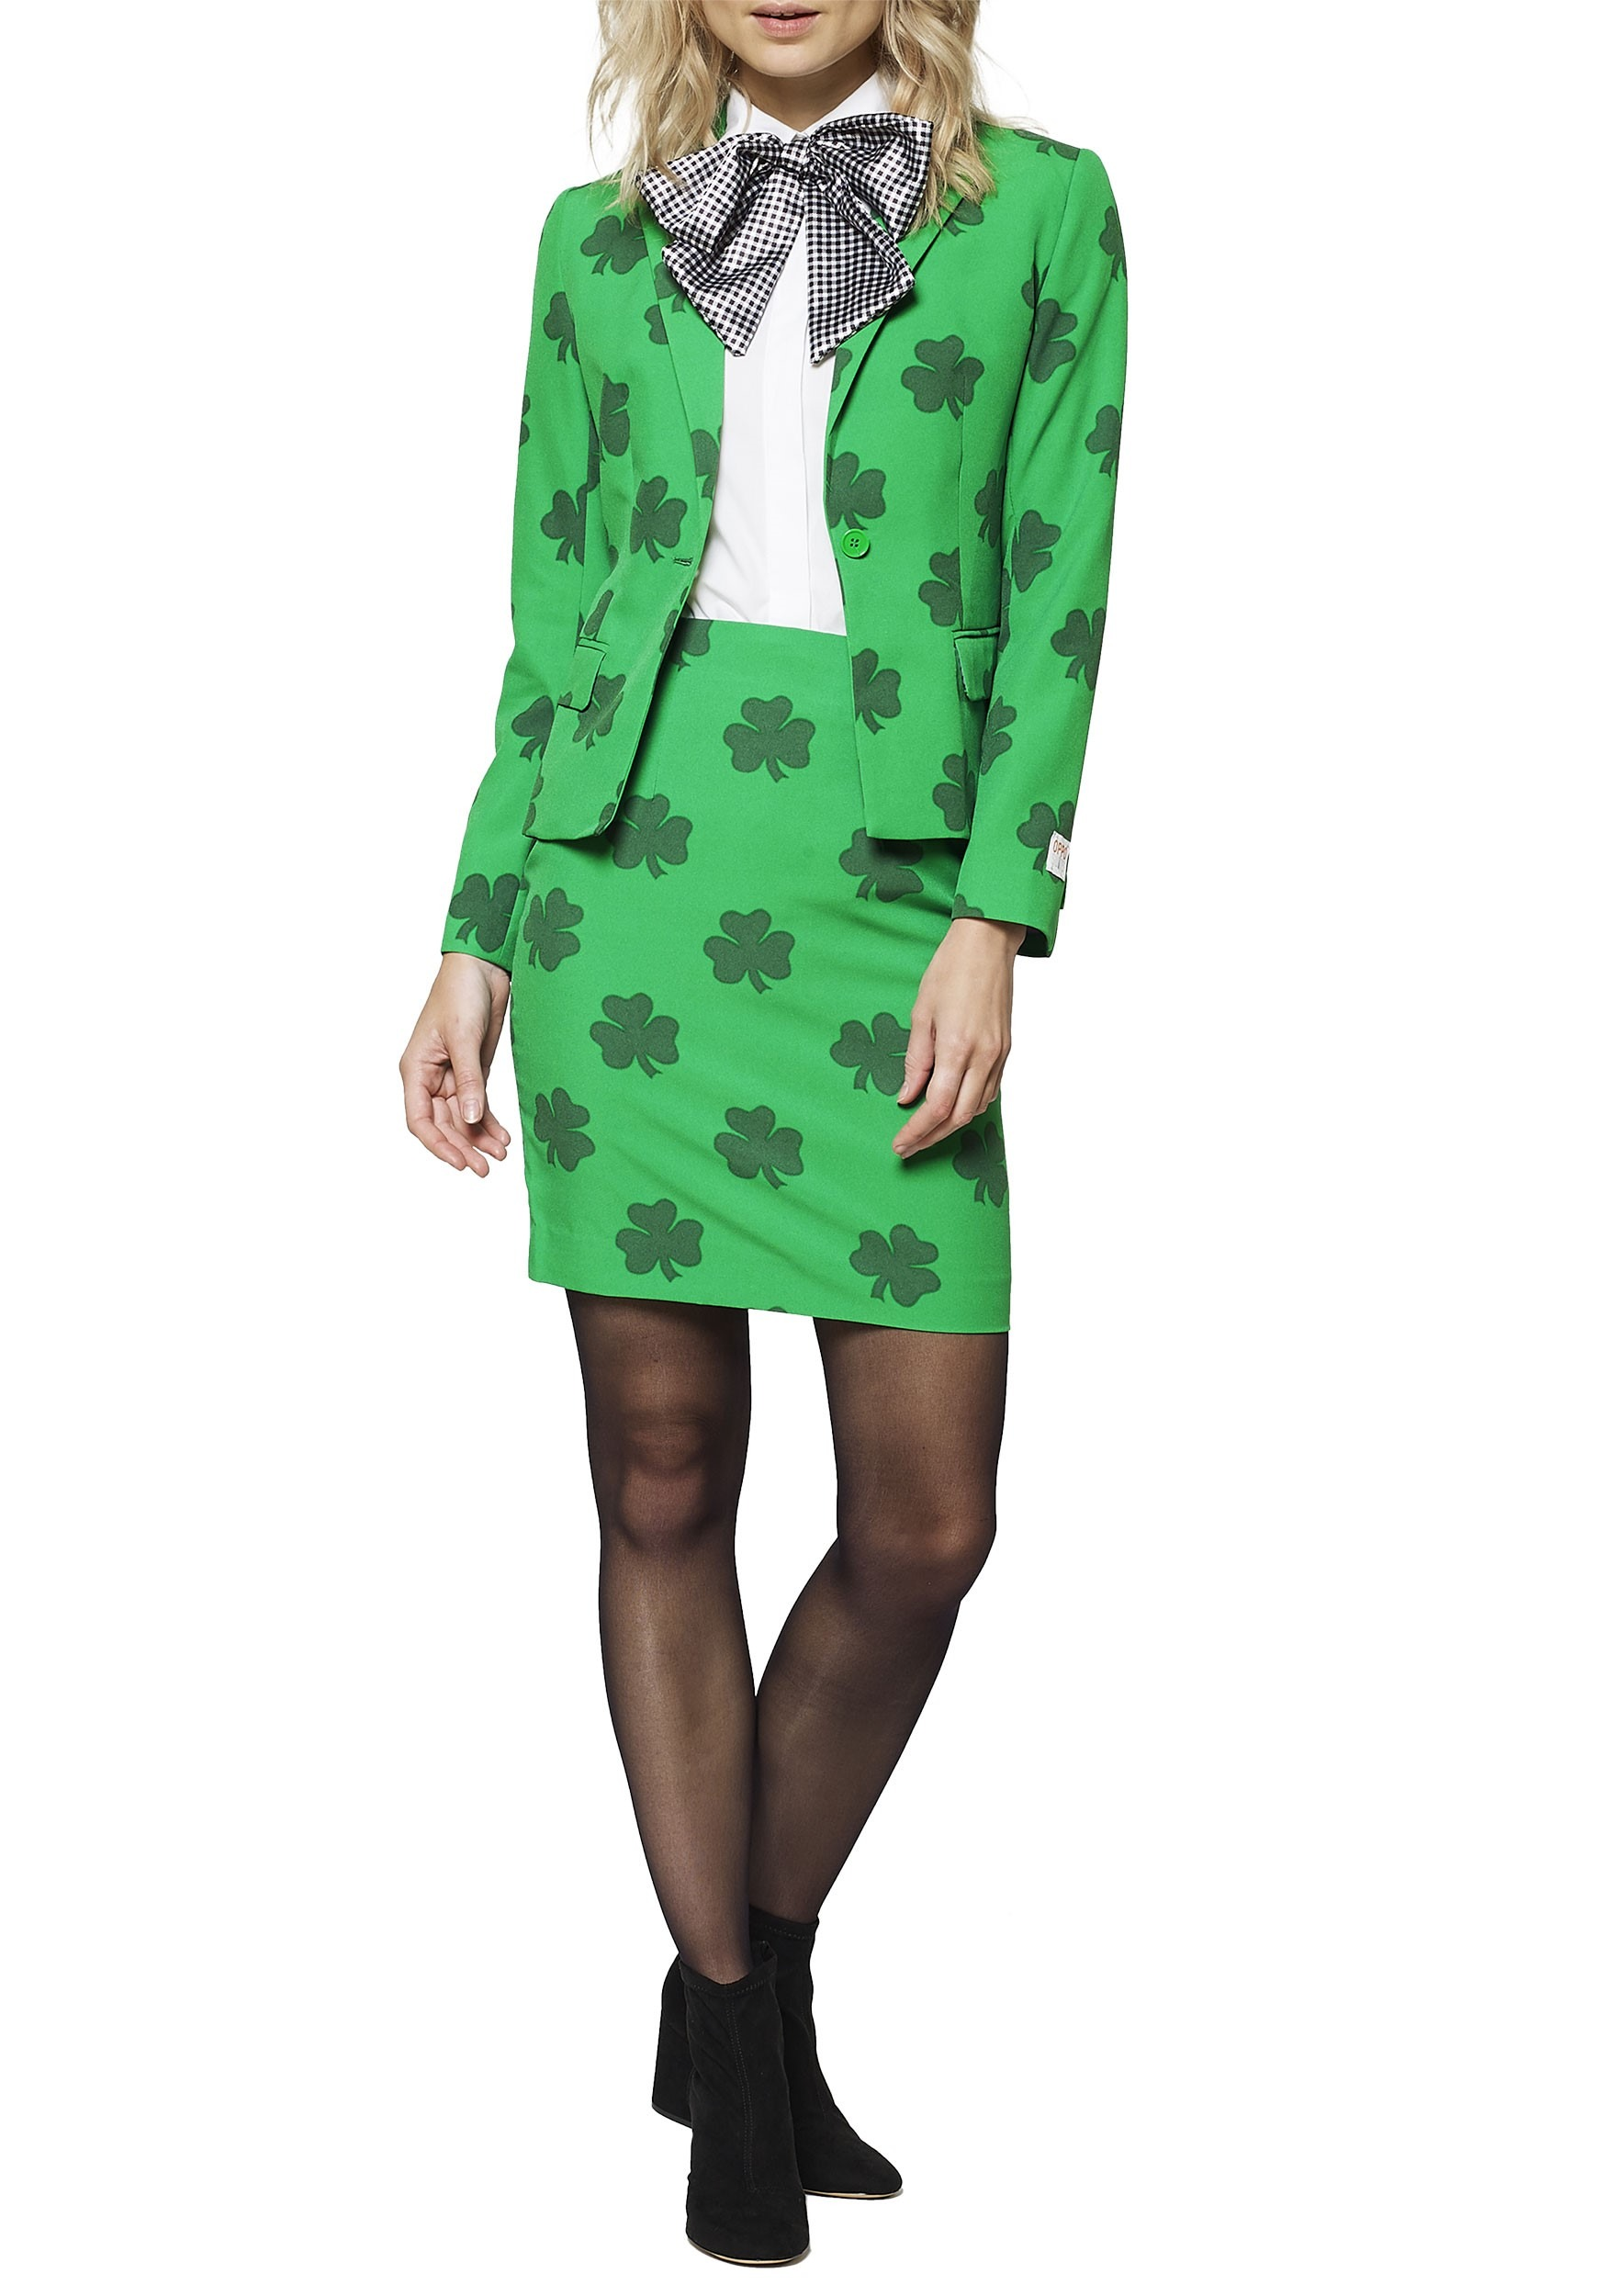 Opposuit St. Patricks Girl Green Womens Suit